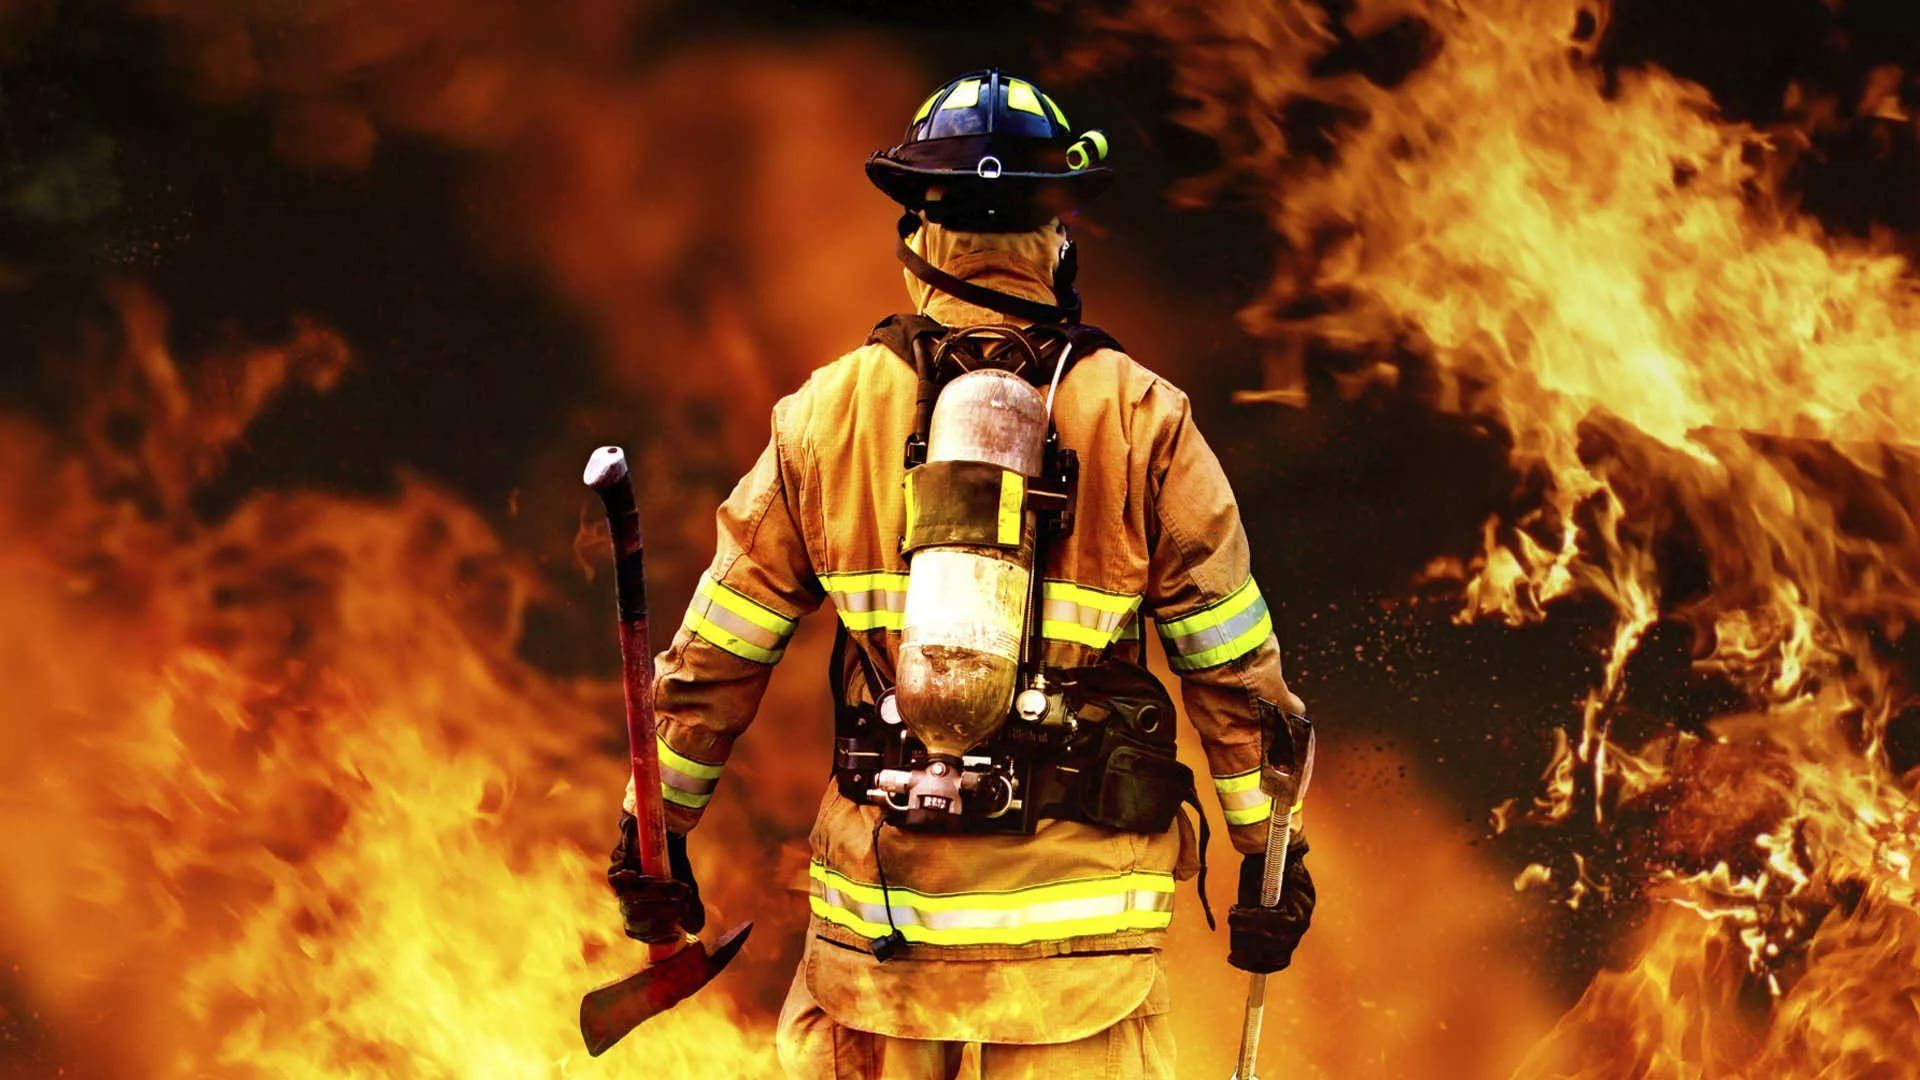 Firefighter Hd Wallpapers 28 Images Wallpaperboat